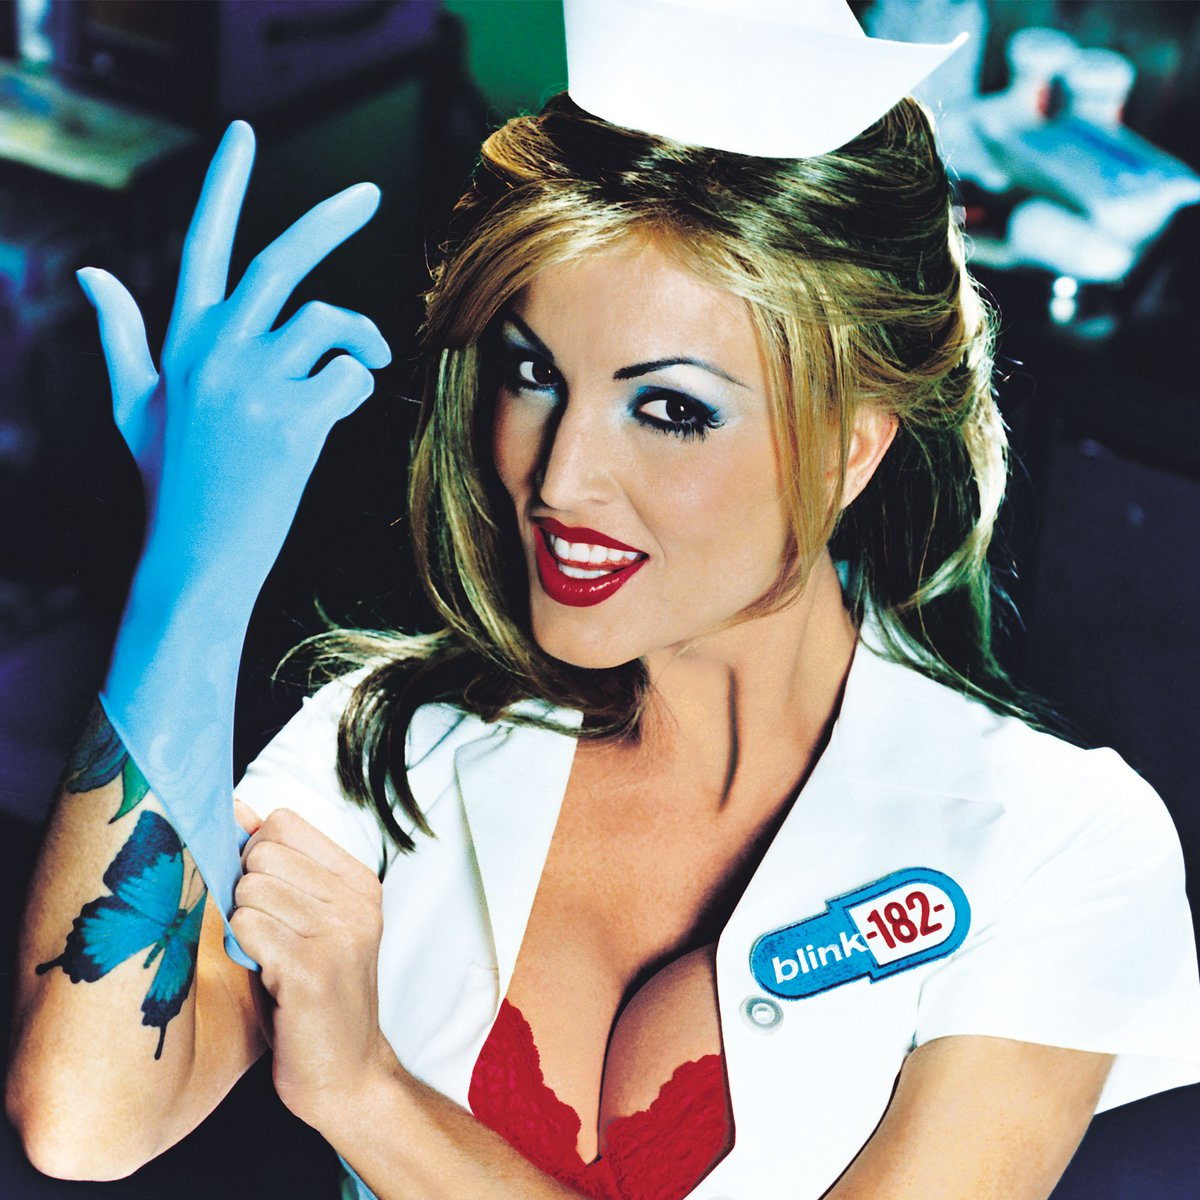 20 years ago today in a galaxy far, far away....Enema of the State was released & forever changed our lives. Thanks to you, it took our band places we never could have dreamed. Tell us about the first time you heard it & what it means to you. #Enema20 http://smarturl.it/EnemaOfTheState